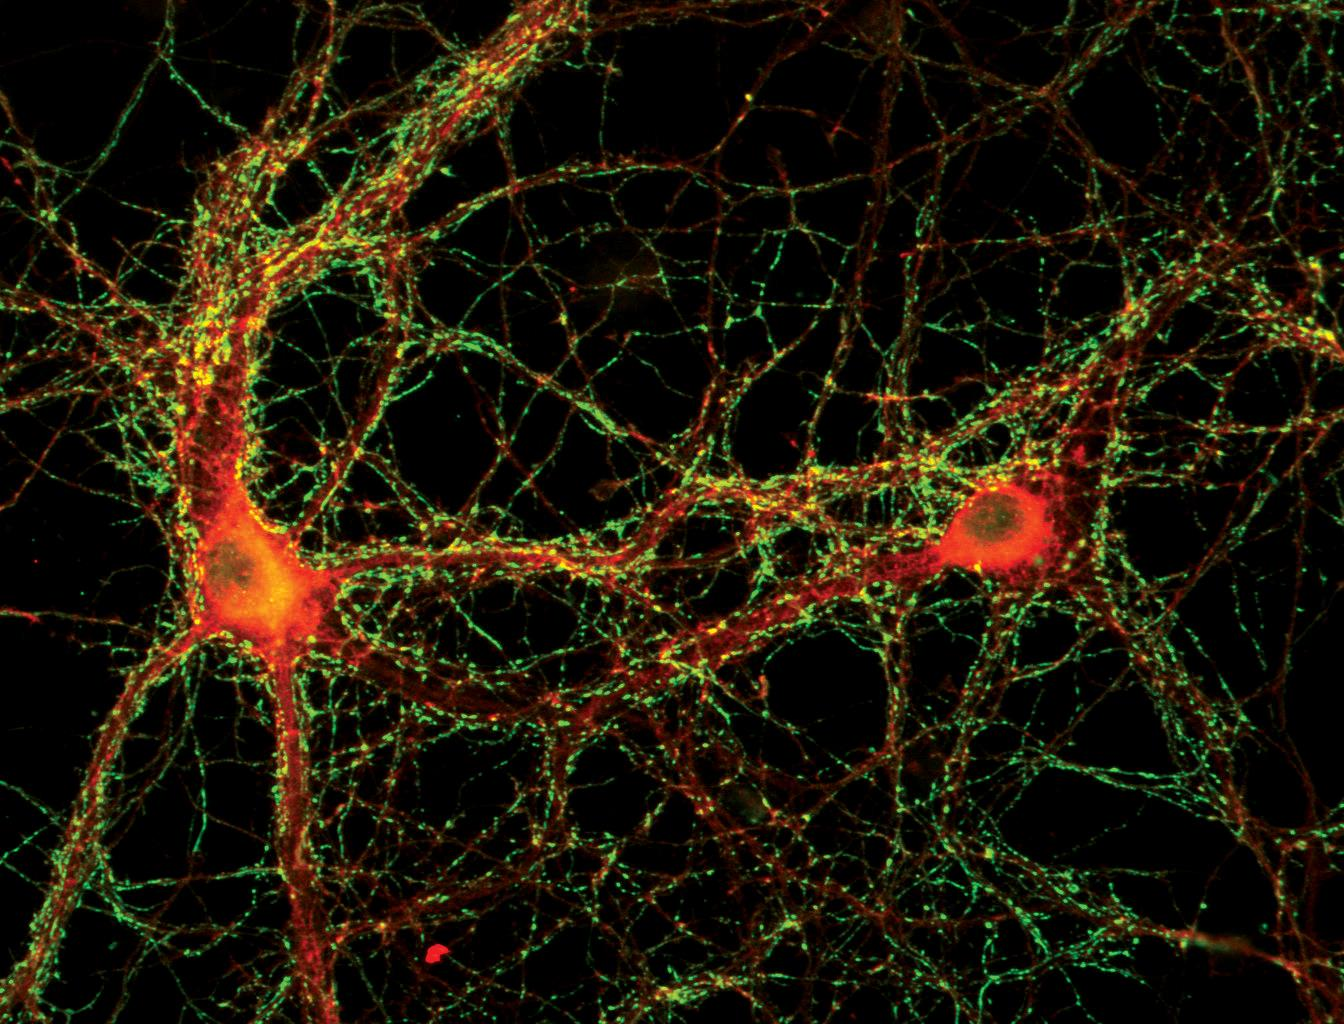 Epifluorescence microscopy produced this image of synapsin (green spots on the surface of two neurons) and adaptin (in red)